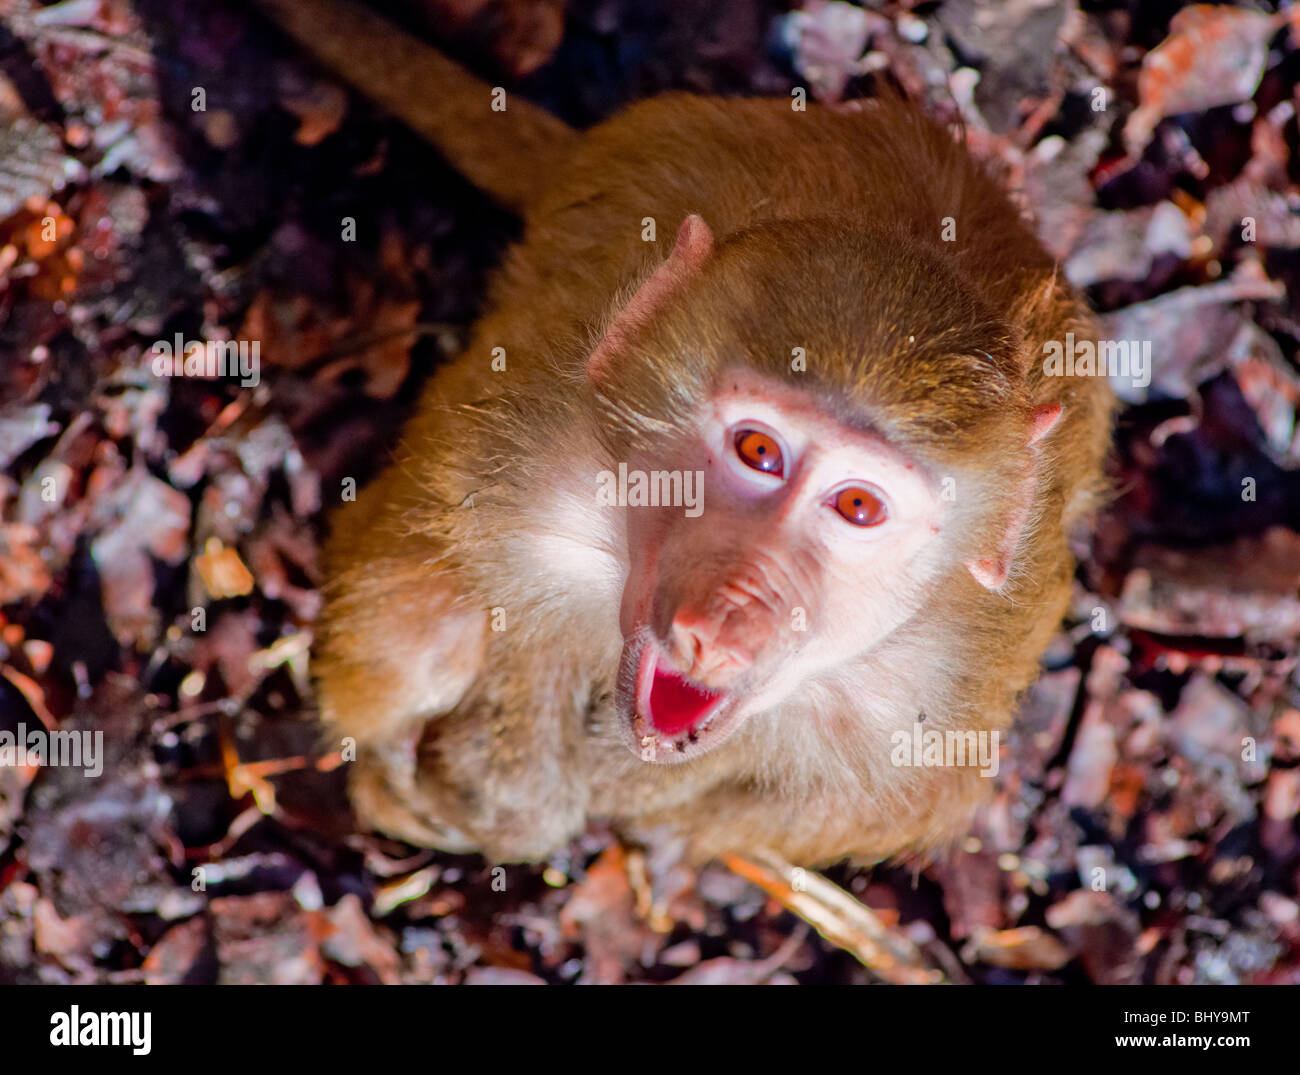 A young Hamadryas baboon looking up and howling at the camera. - Stock Image